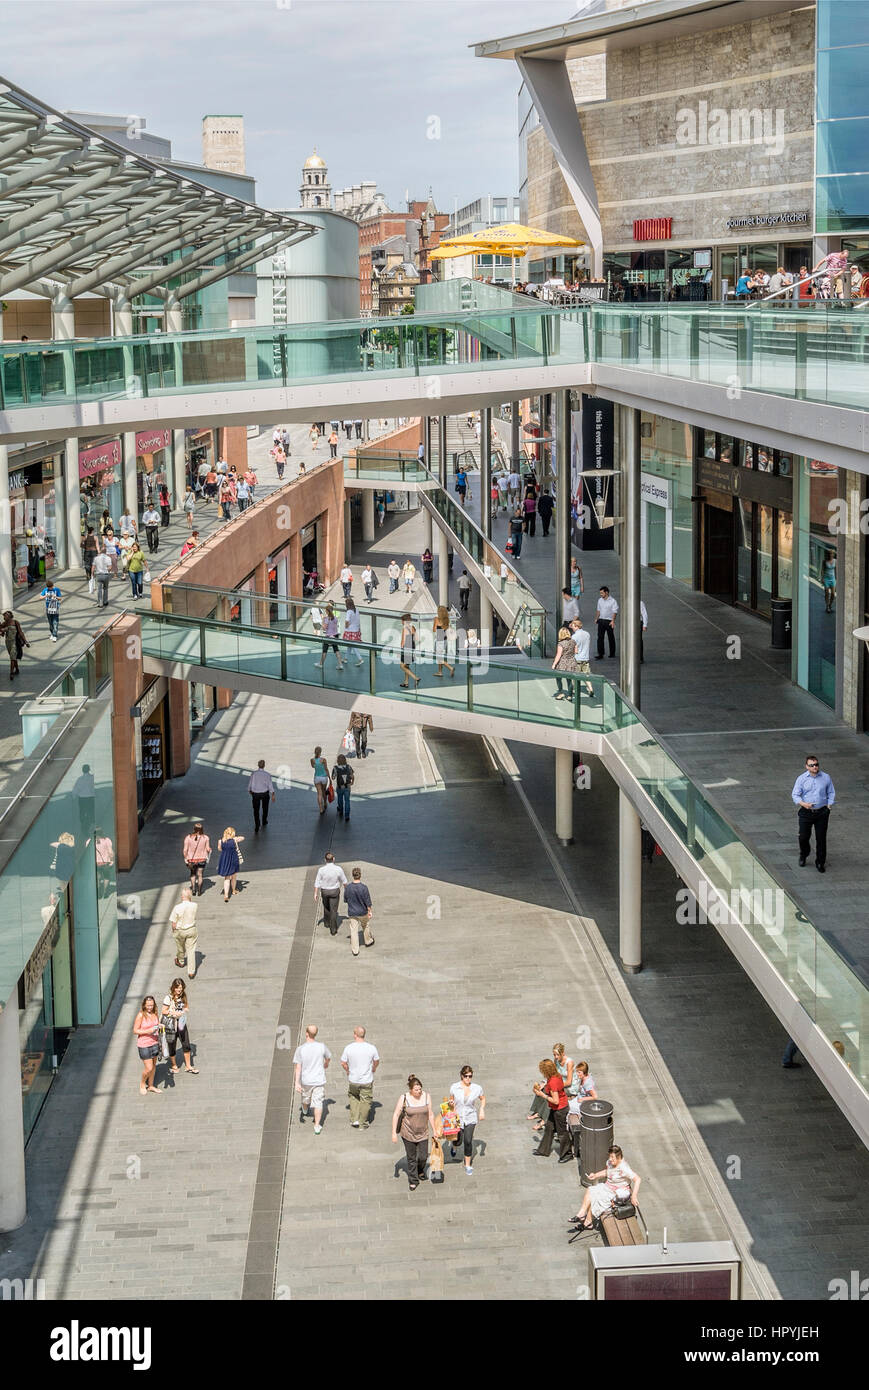 Liverpool ONE is a shopping, residential and leisure centre in Liverpool, England. The project, previously known - Stock Image